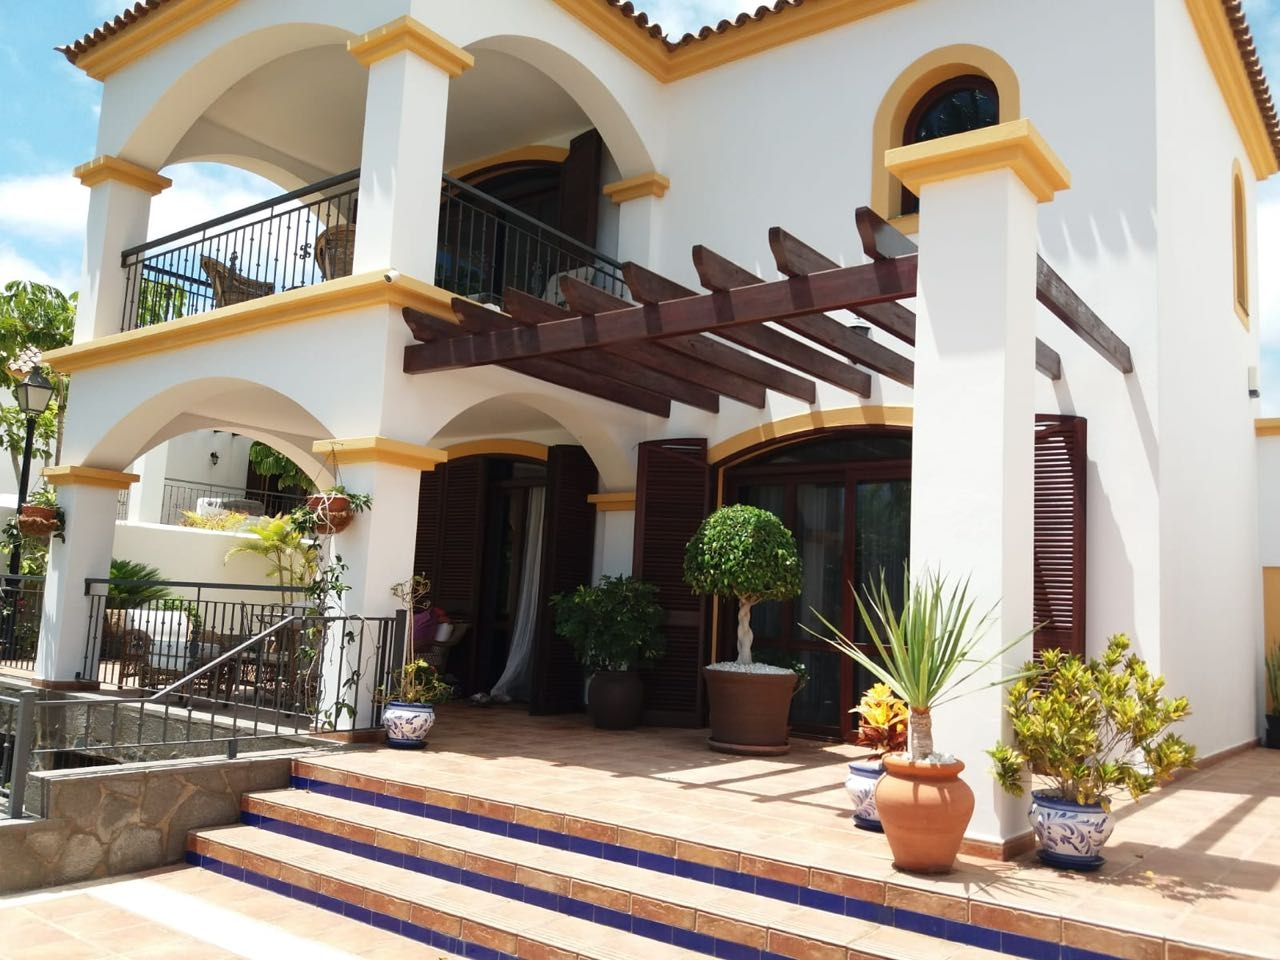 Properties for Sale in Tenerife, Canary Islands, Spain | SylkWayStar Real Estate. Luxury Villa 5 Bedrooms Madroñal. Image-24425